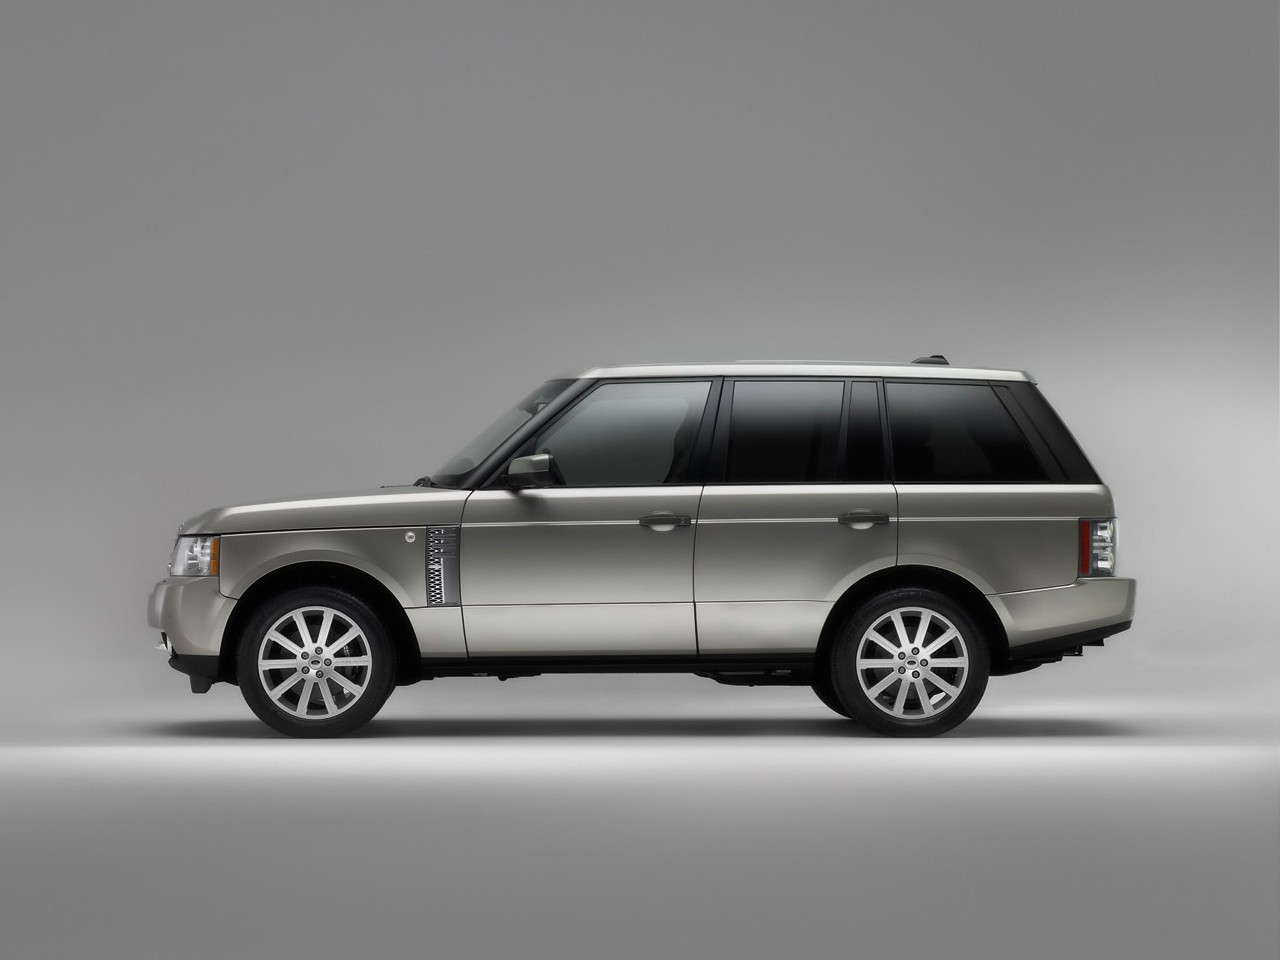 2010 land rover range rover motor desktop. Black Bedroom Furniture Sets. Home Design Ideas